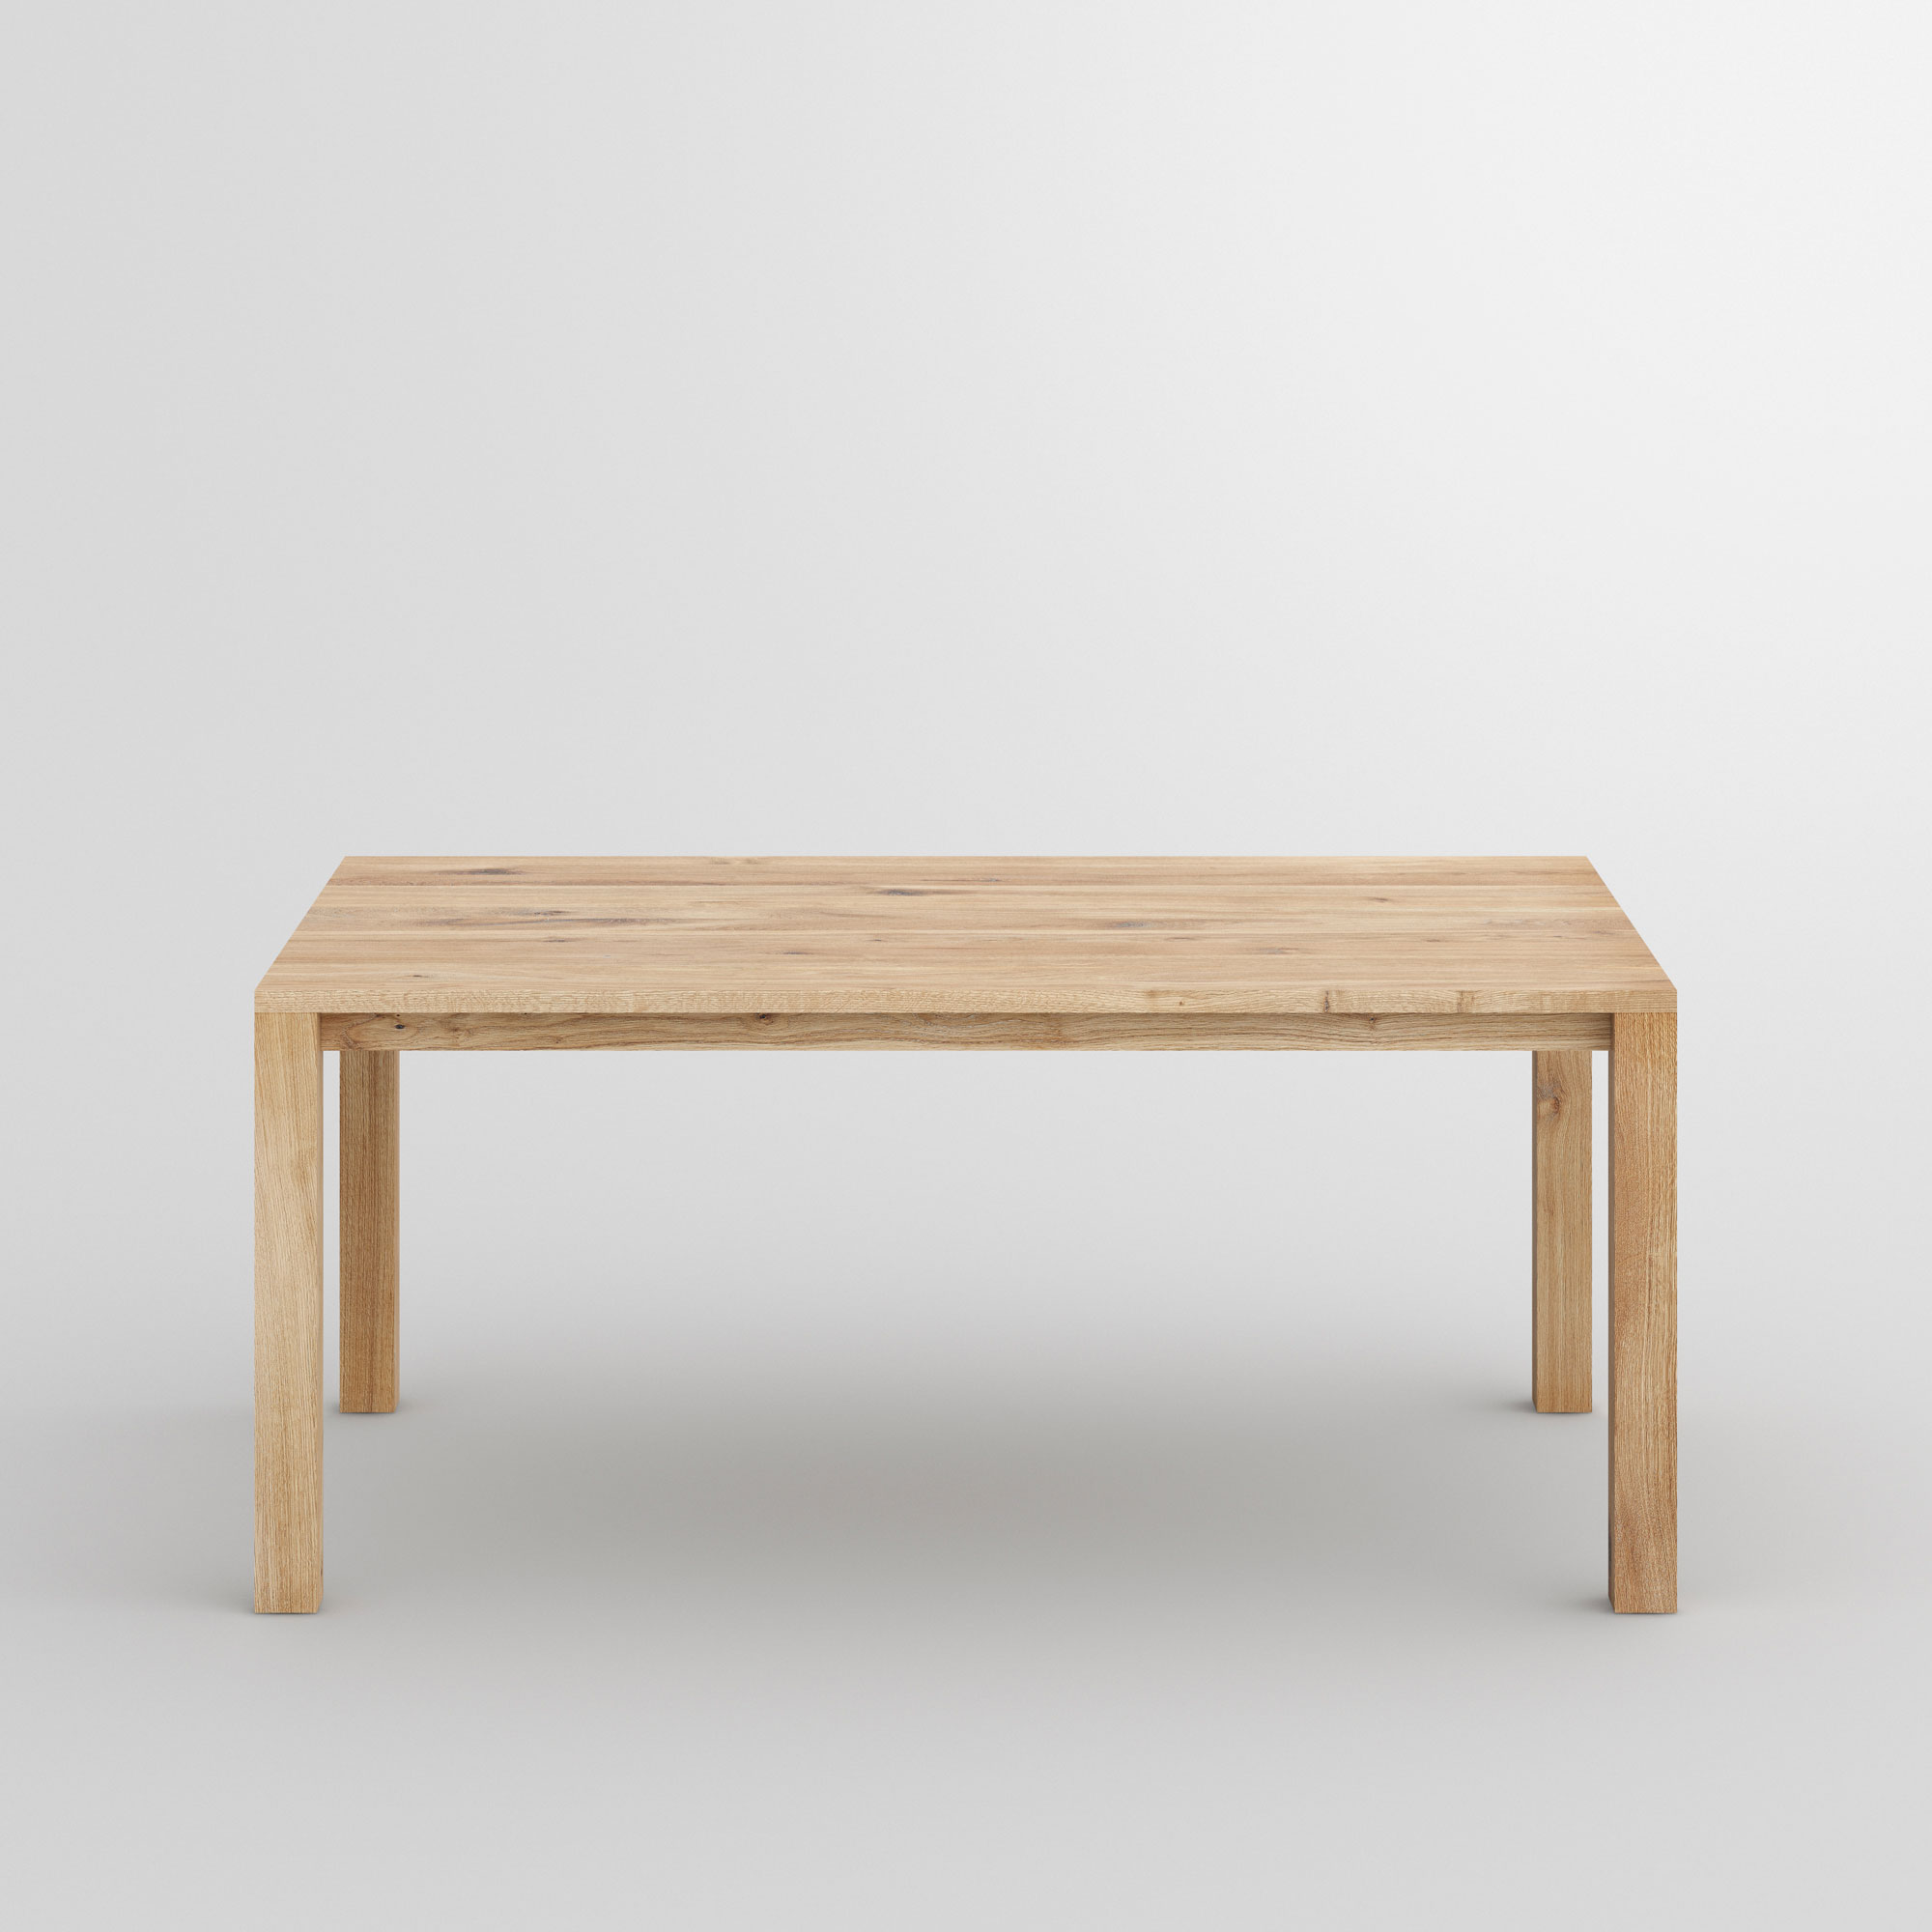 Variable Dining Table VARIUS BASIC cam2 custom made in solid wood by vitamin design